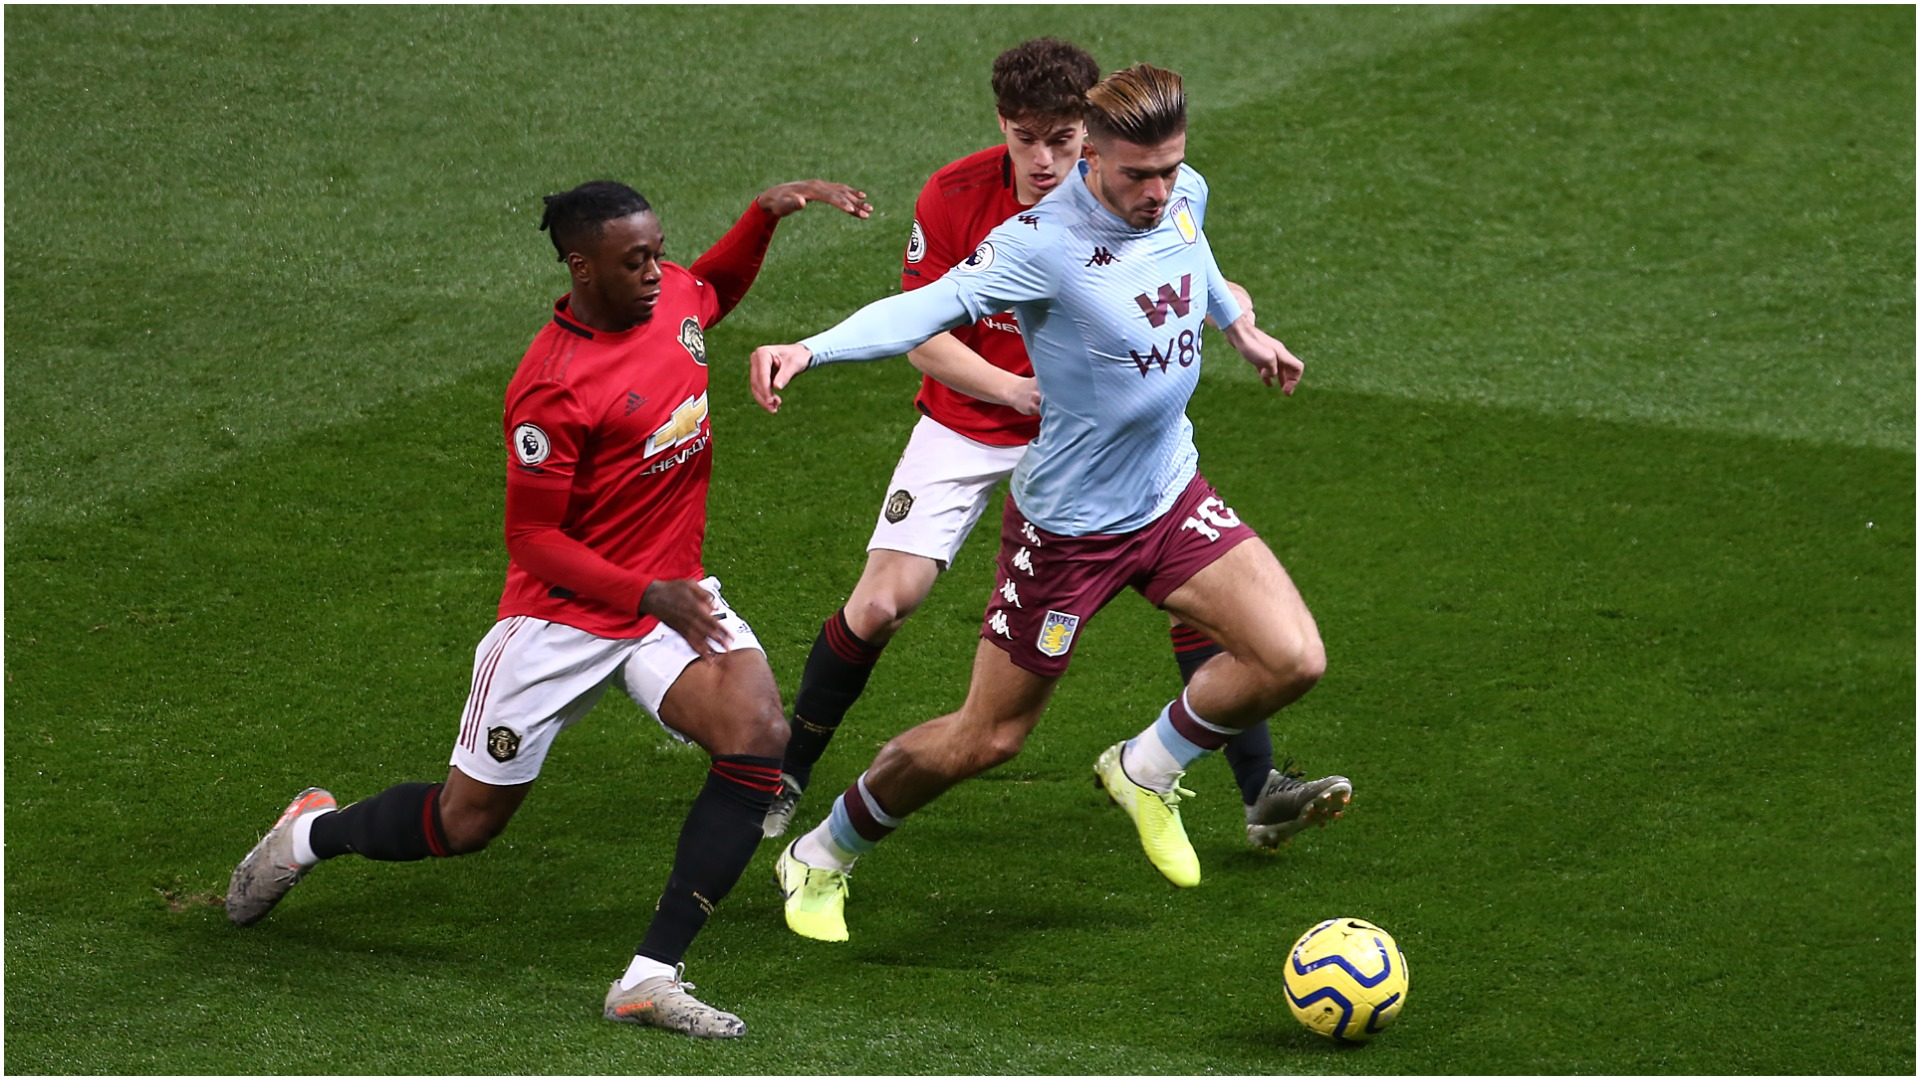 Grealish v Wan-Bissaka: Man United right-back relishing duel as unstoppable force meets immovable object